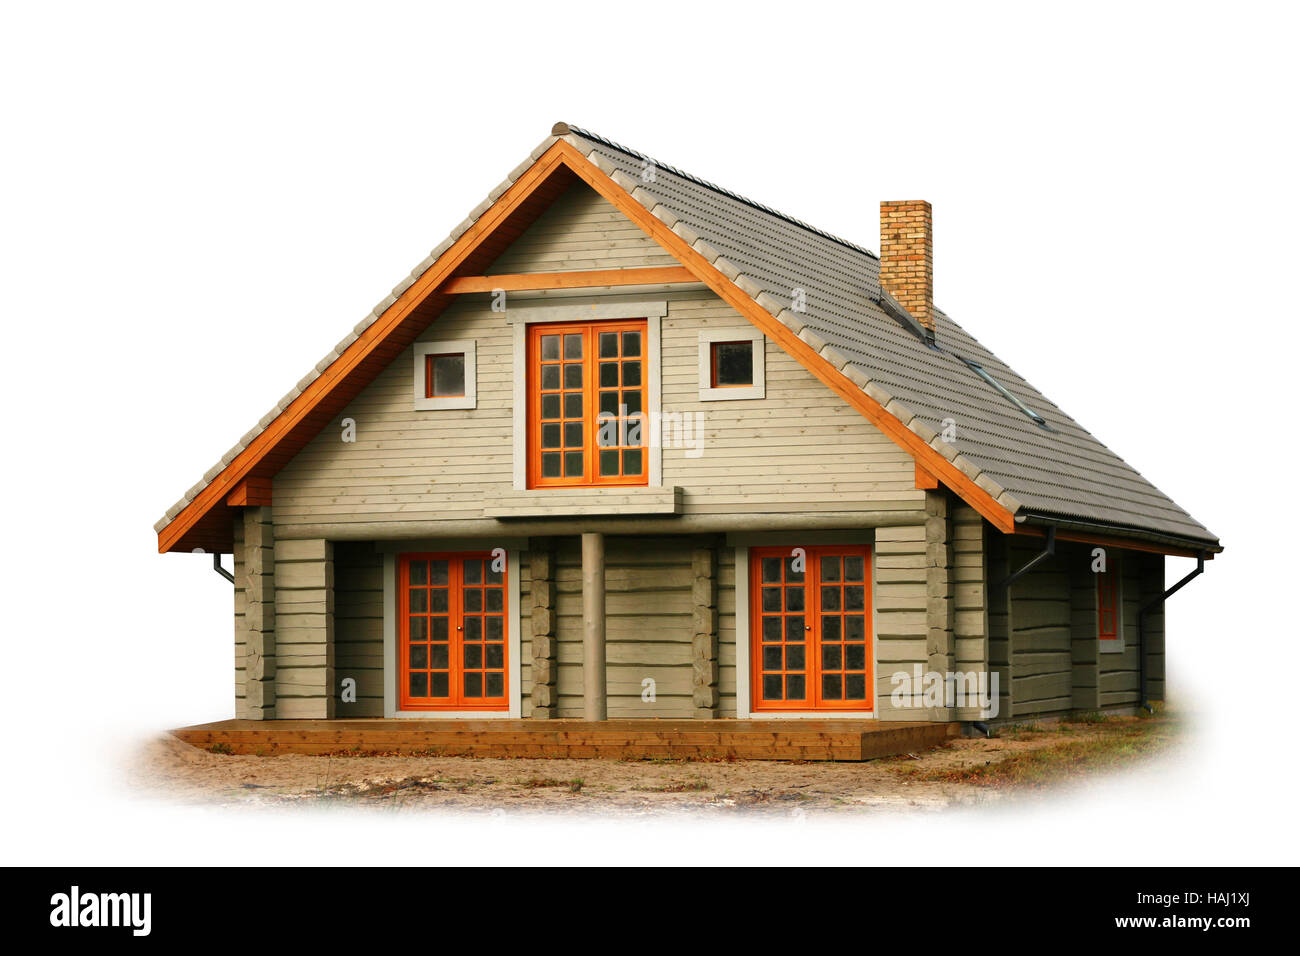 wooden house isolated on white - Stock Image